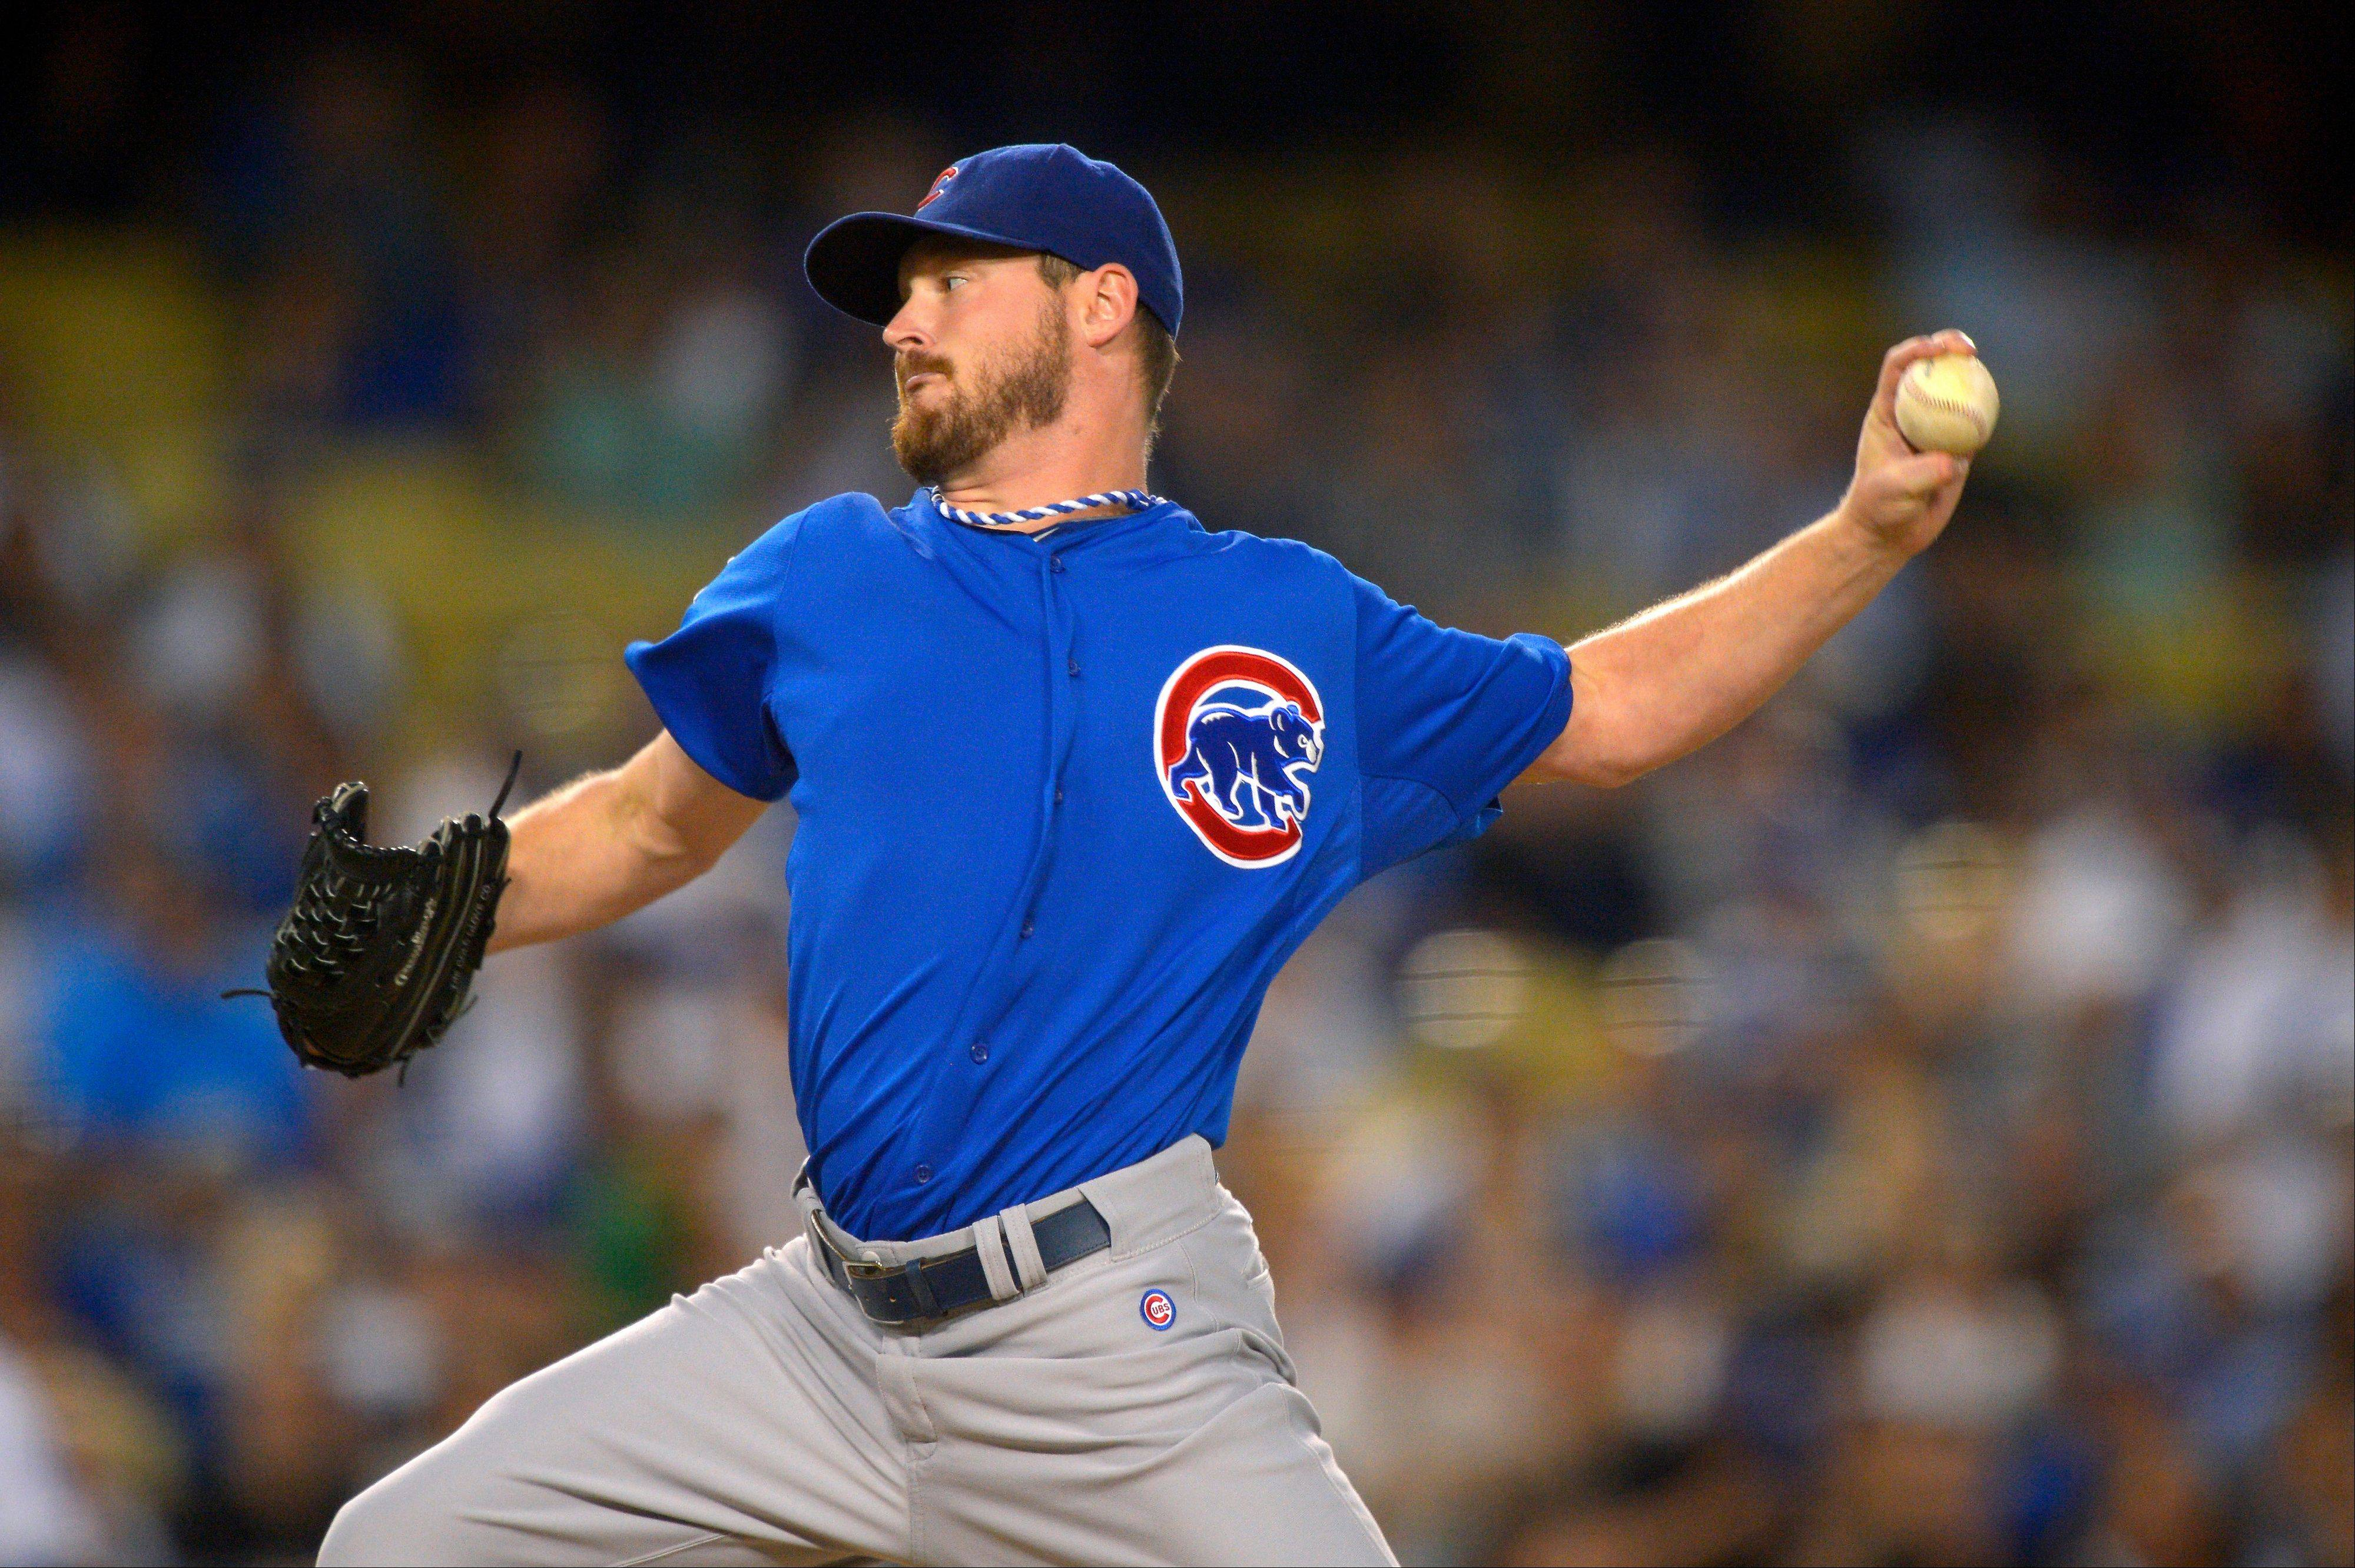 The Cubs' starting pitcher Travis Wood outpitched Clayton Kershaw Tuesday night as the Cubs beat the Dodgers 3-2 in Los Angeles.